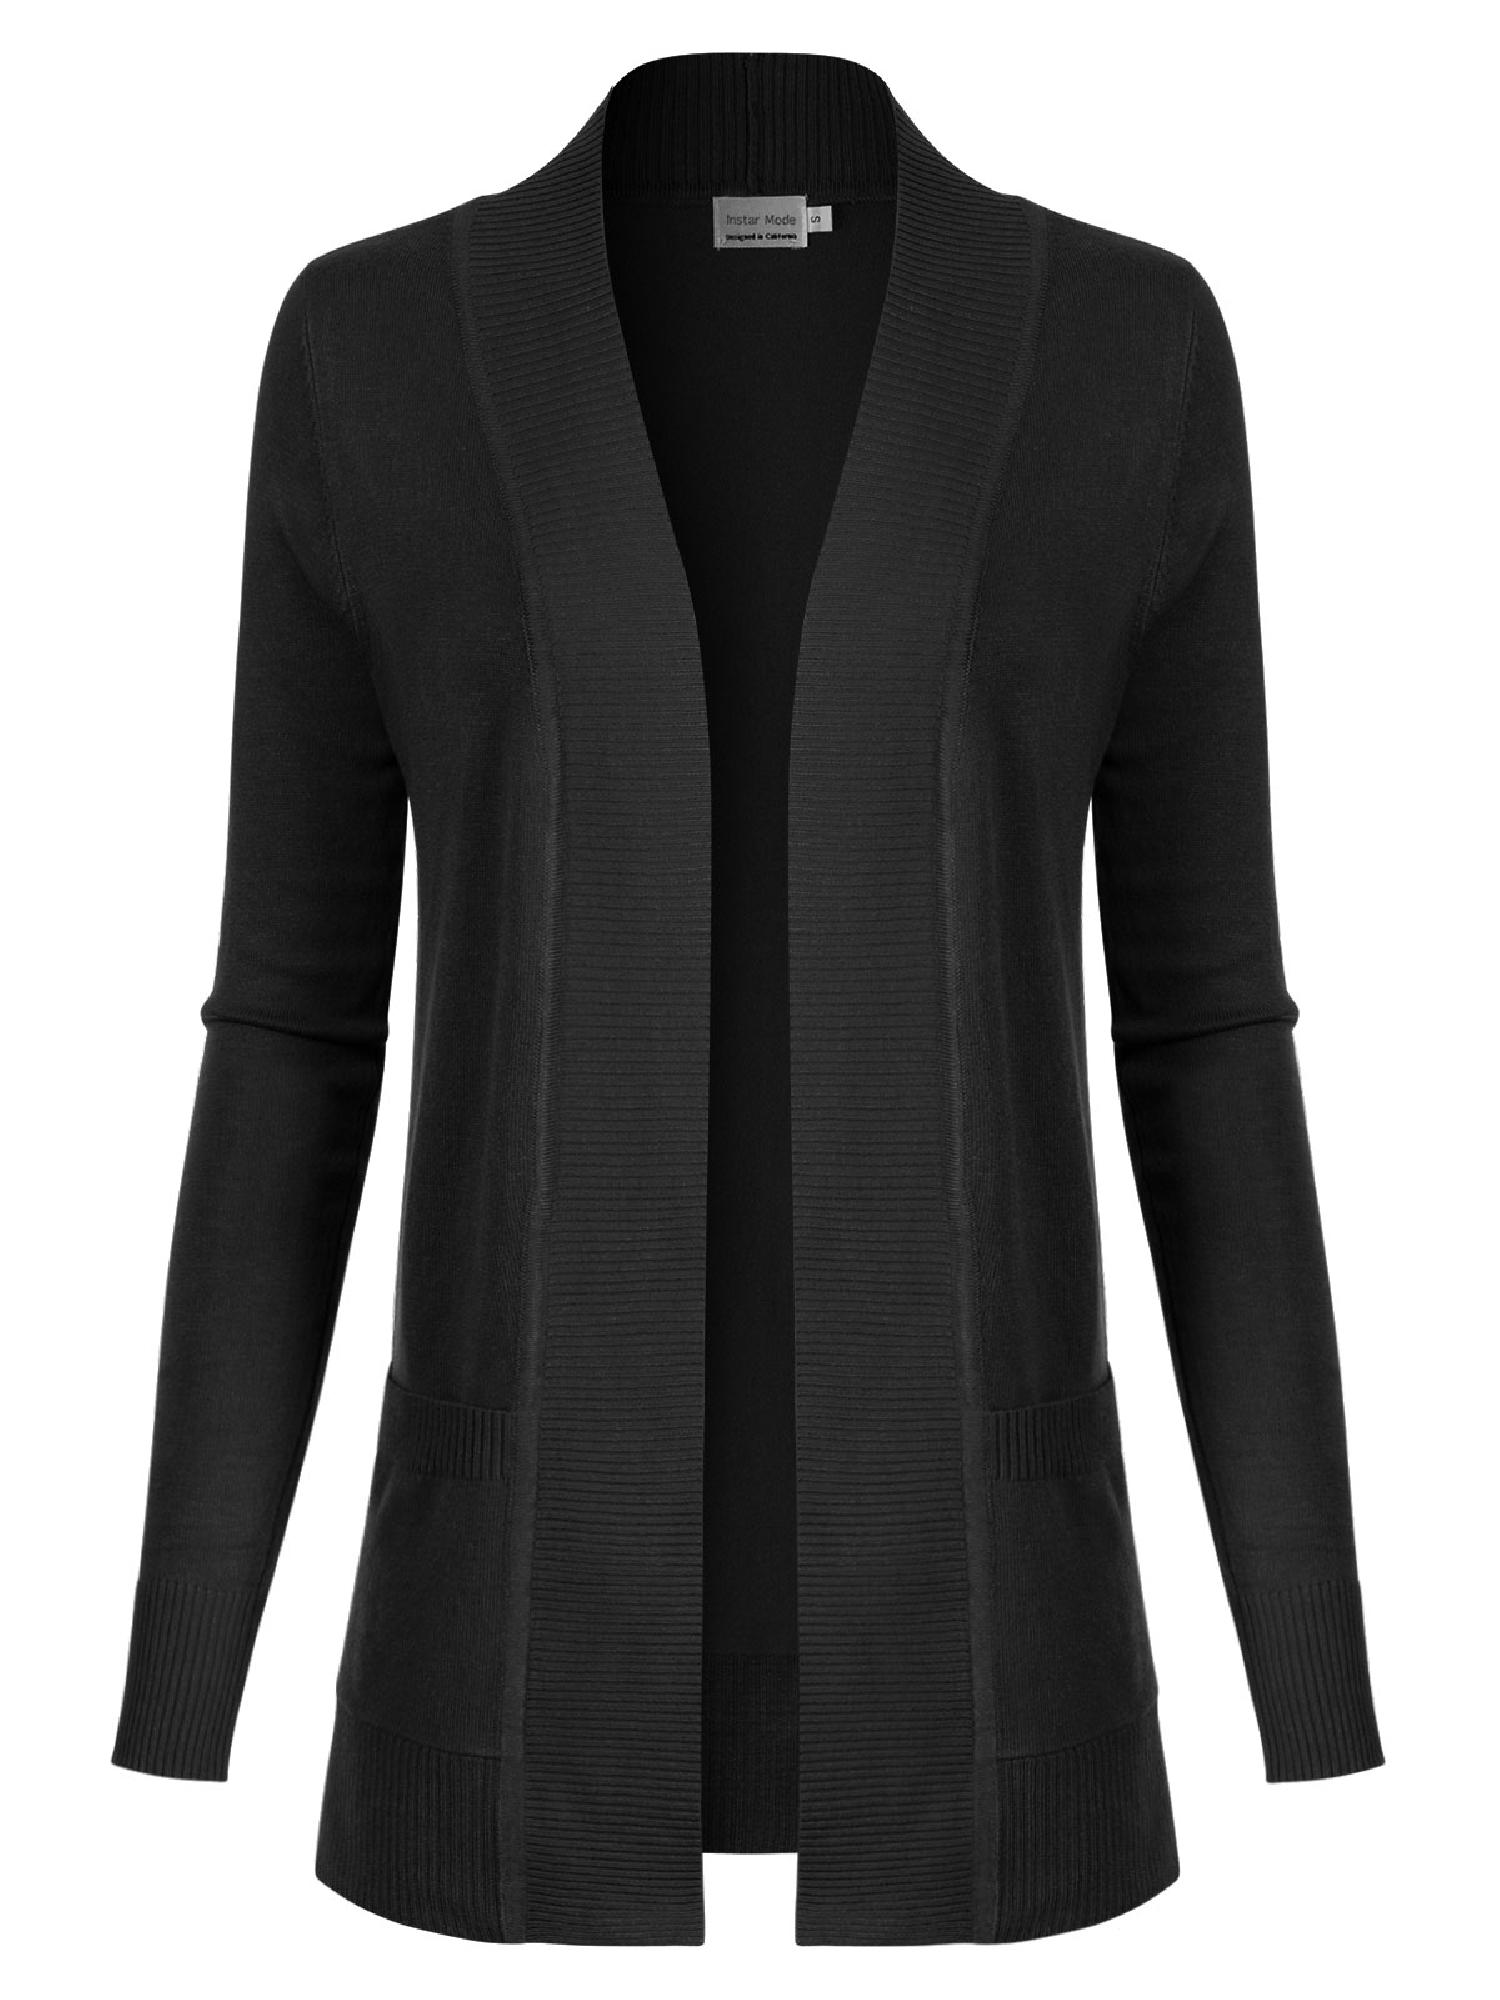 Made by Olivia Women's Open Front Long Sleeve Classic Knit Cardigan Black L